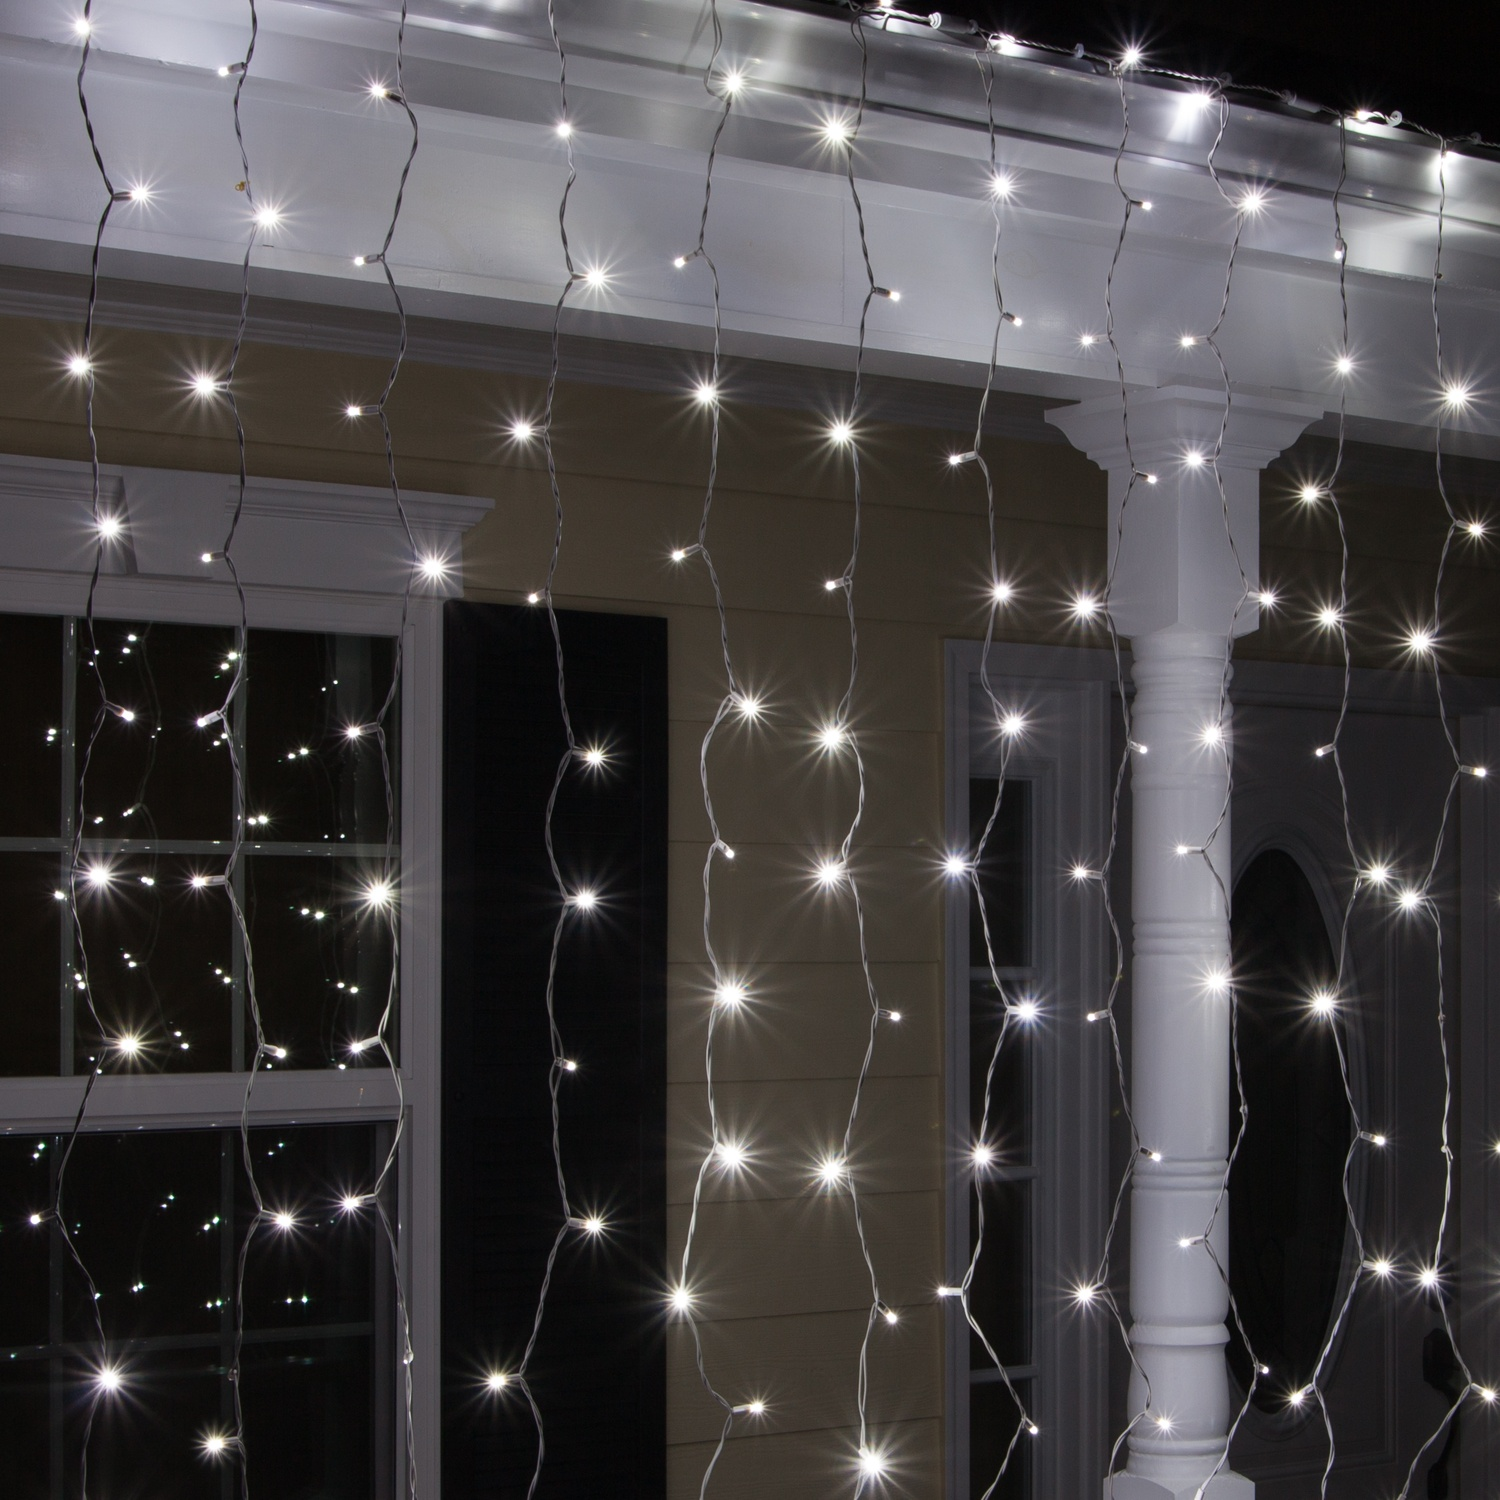 LED Christmas Lights - Cool White LED Icicle Lights